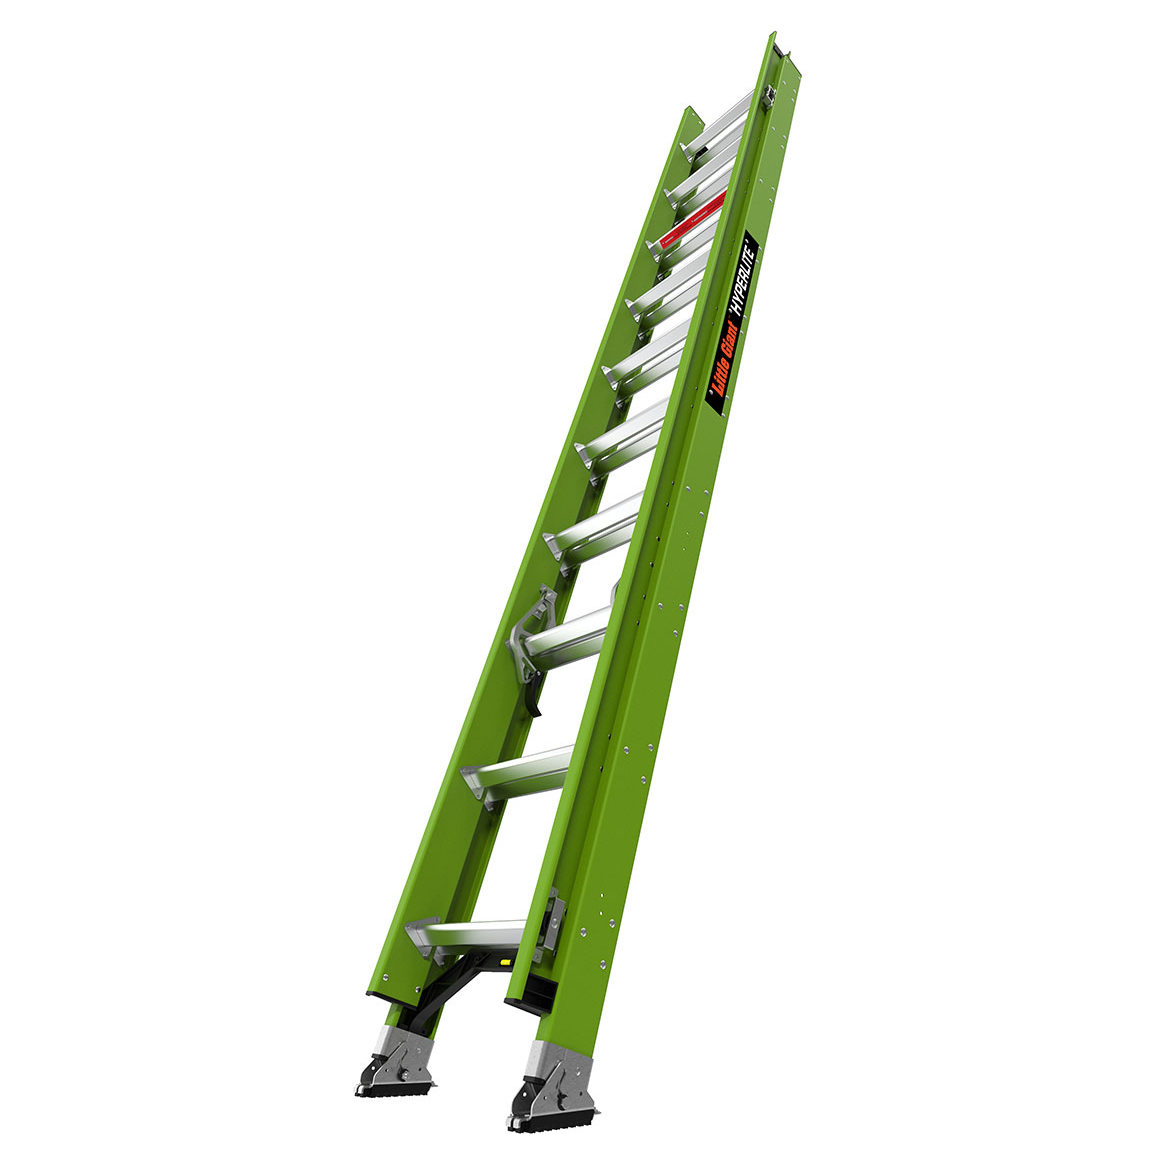 20 Ft. HyperLite Fiberglass Extension Ladder - Type IA